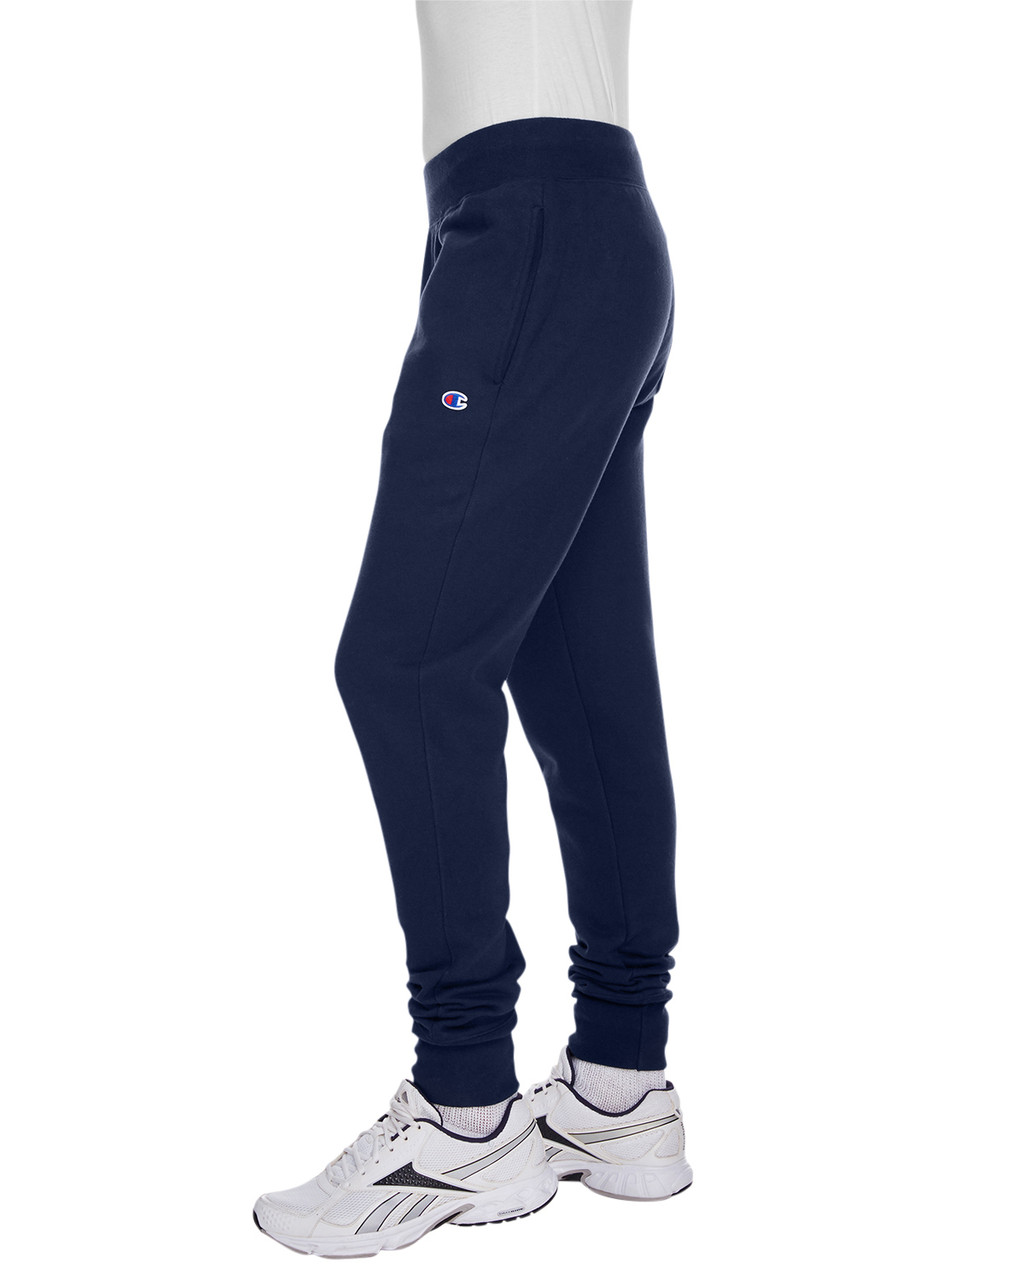 Navy - Side, RW25 Champion Men's Reverse Weave Jogger Pant | BlankClothing.ca